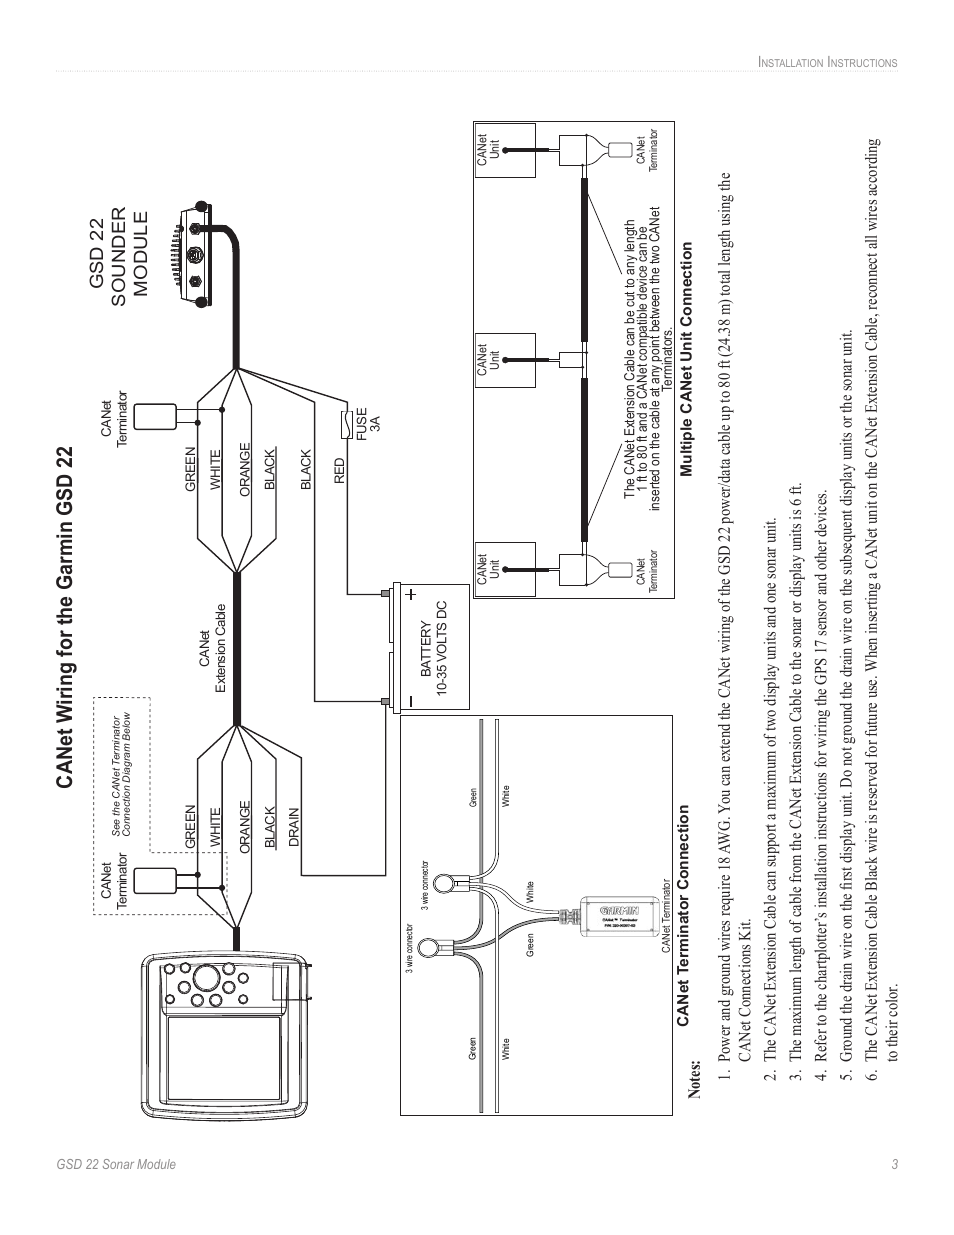 garmin wiring diagram 17 canet w iring for the garmin gsd 22, gsd 22 sounder module ... pioneer deh 17 wiring diagram